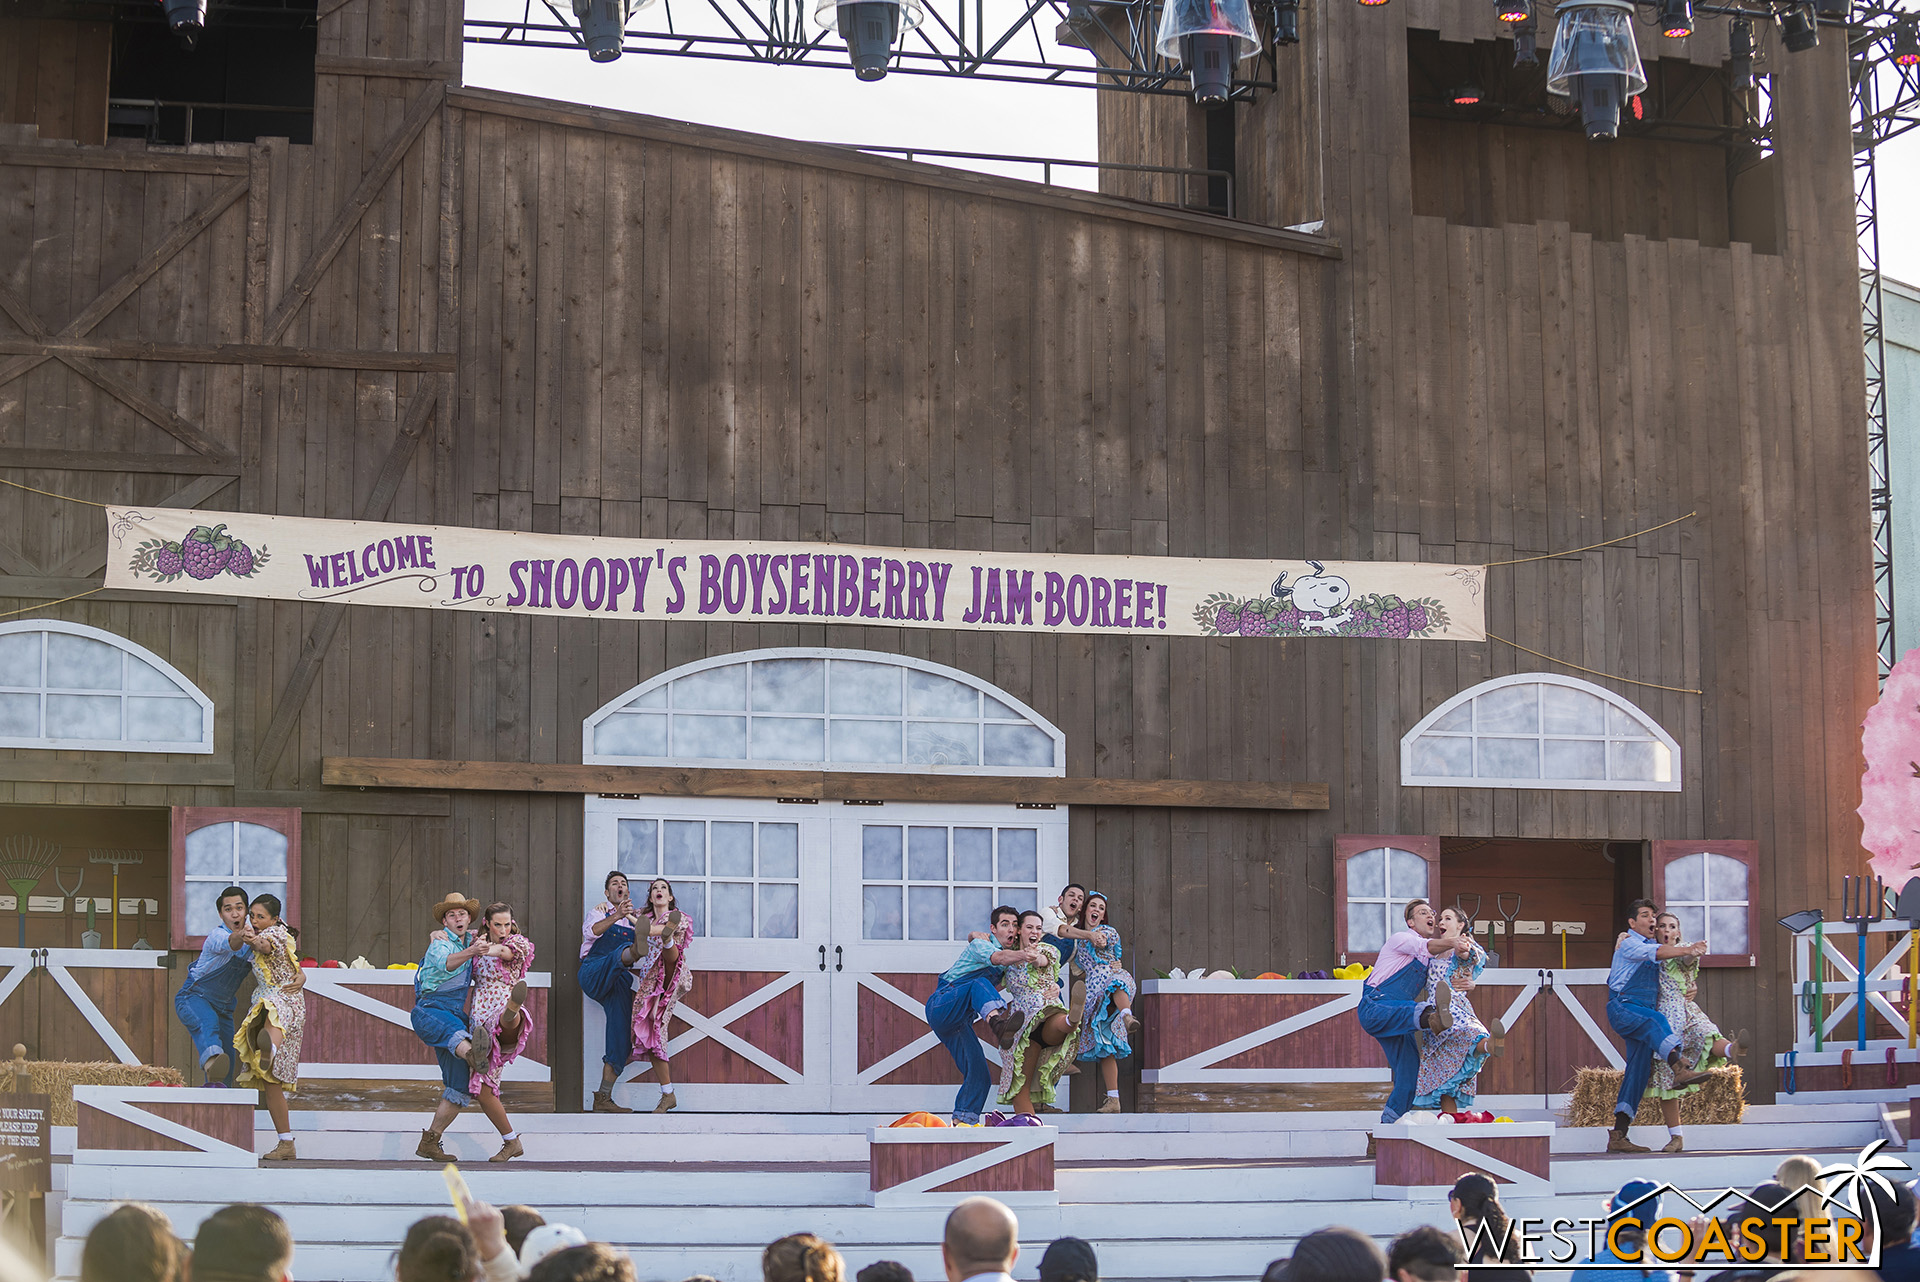 KBF-19_0404-F-Entertainment-SnoopyJamboree-0002.jpg